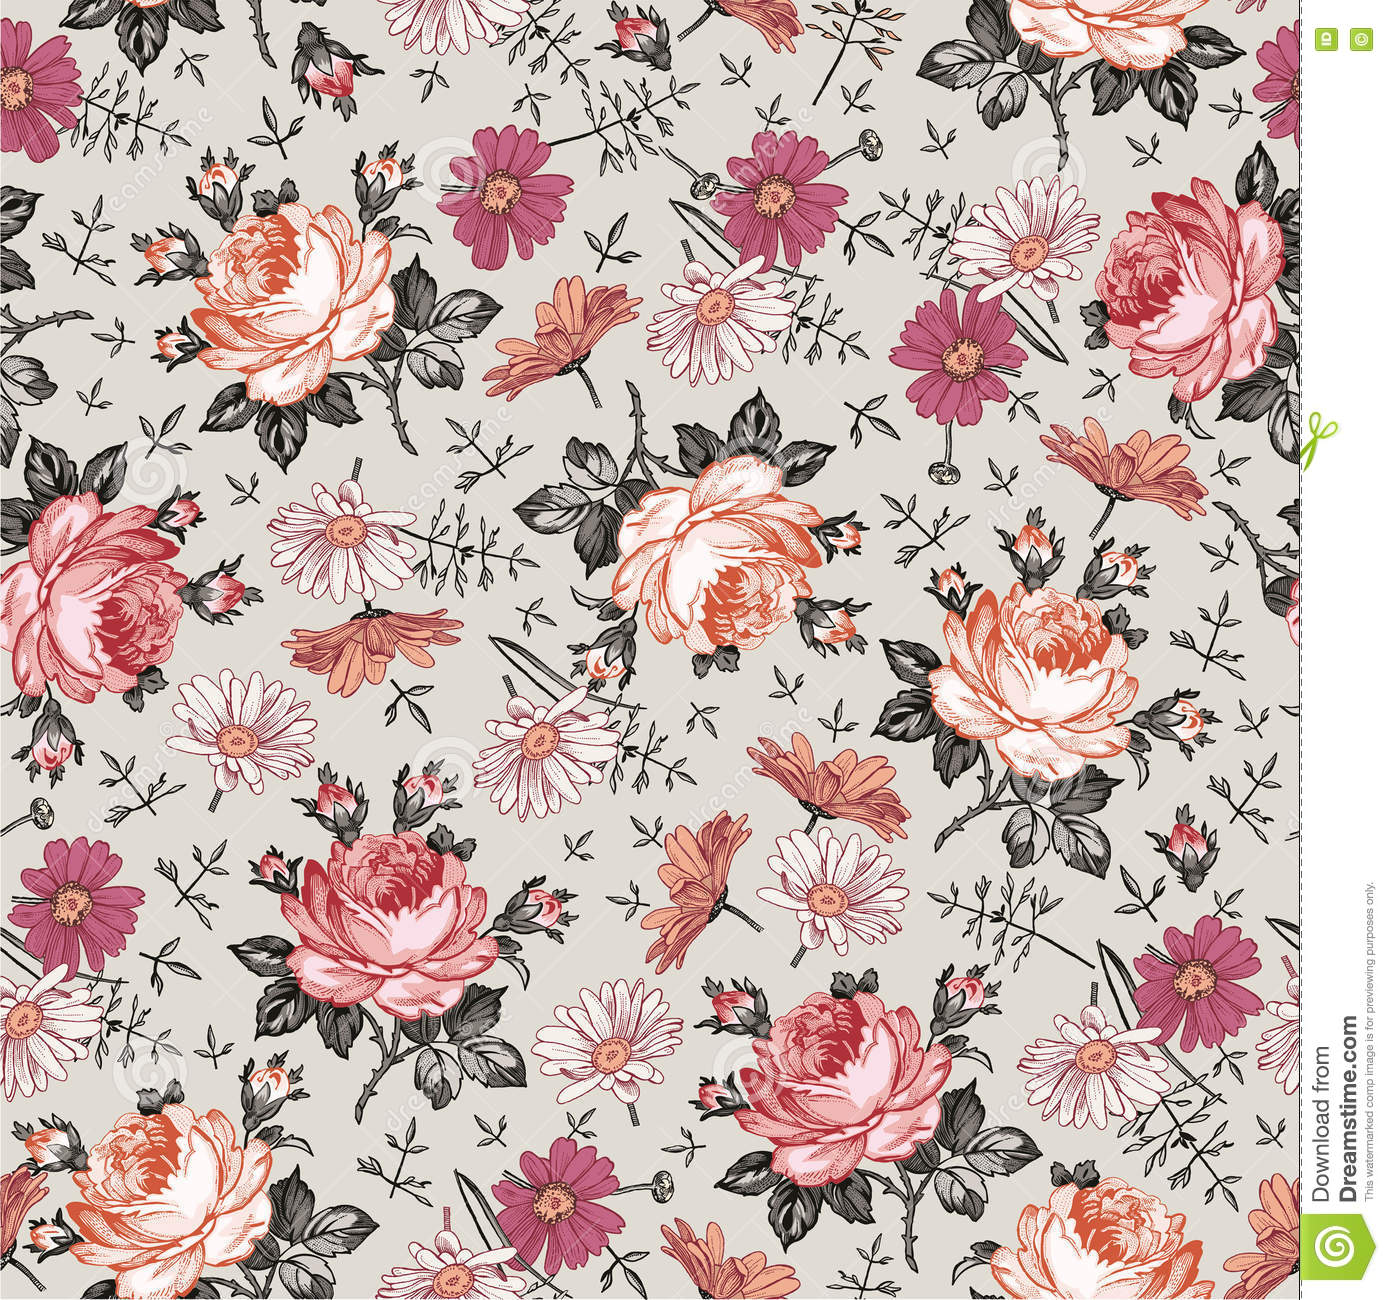 Royalty Free Vector Download Seamless Pattern Realistic Isolated Flowers Vintage Baroque Background